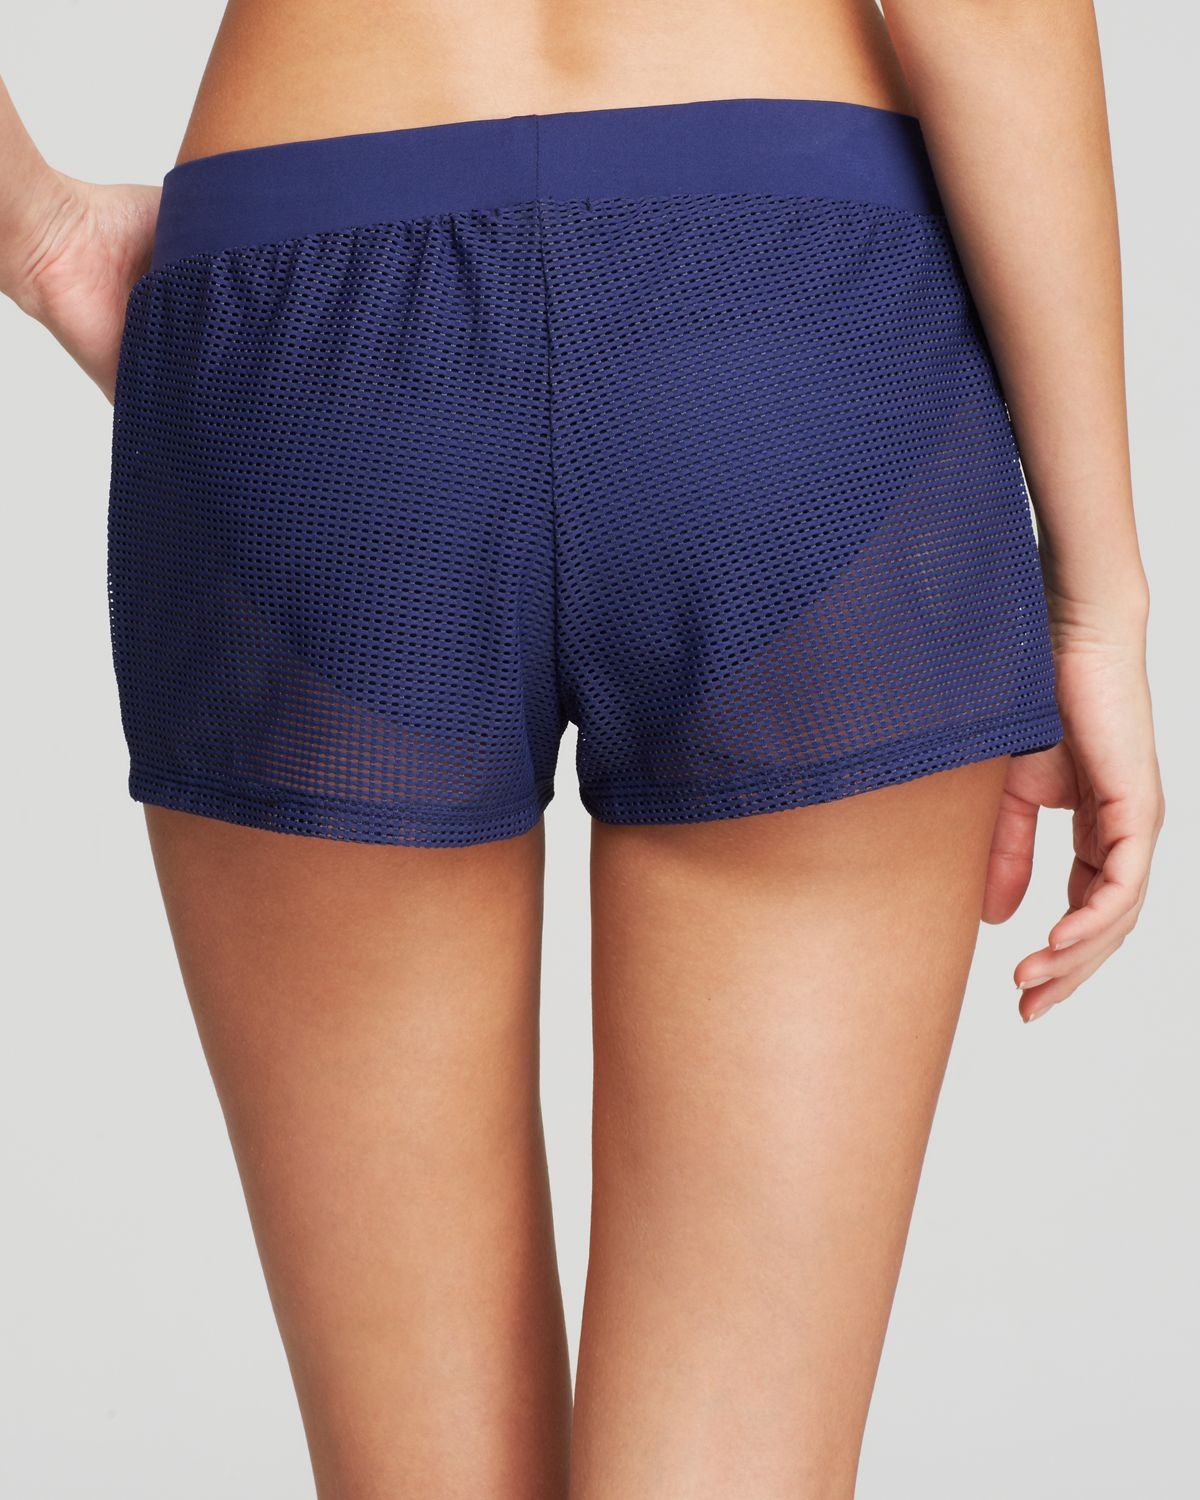 84a1adb14cdd Splendid Topanga Perforated Shorts Swim Cover Up in Blue - Lyst